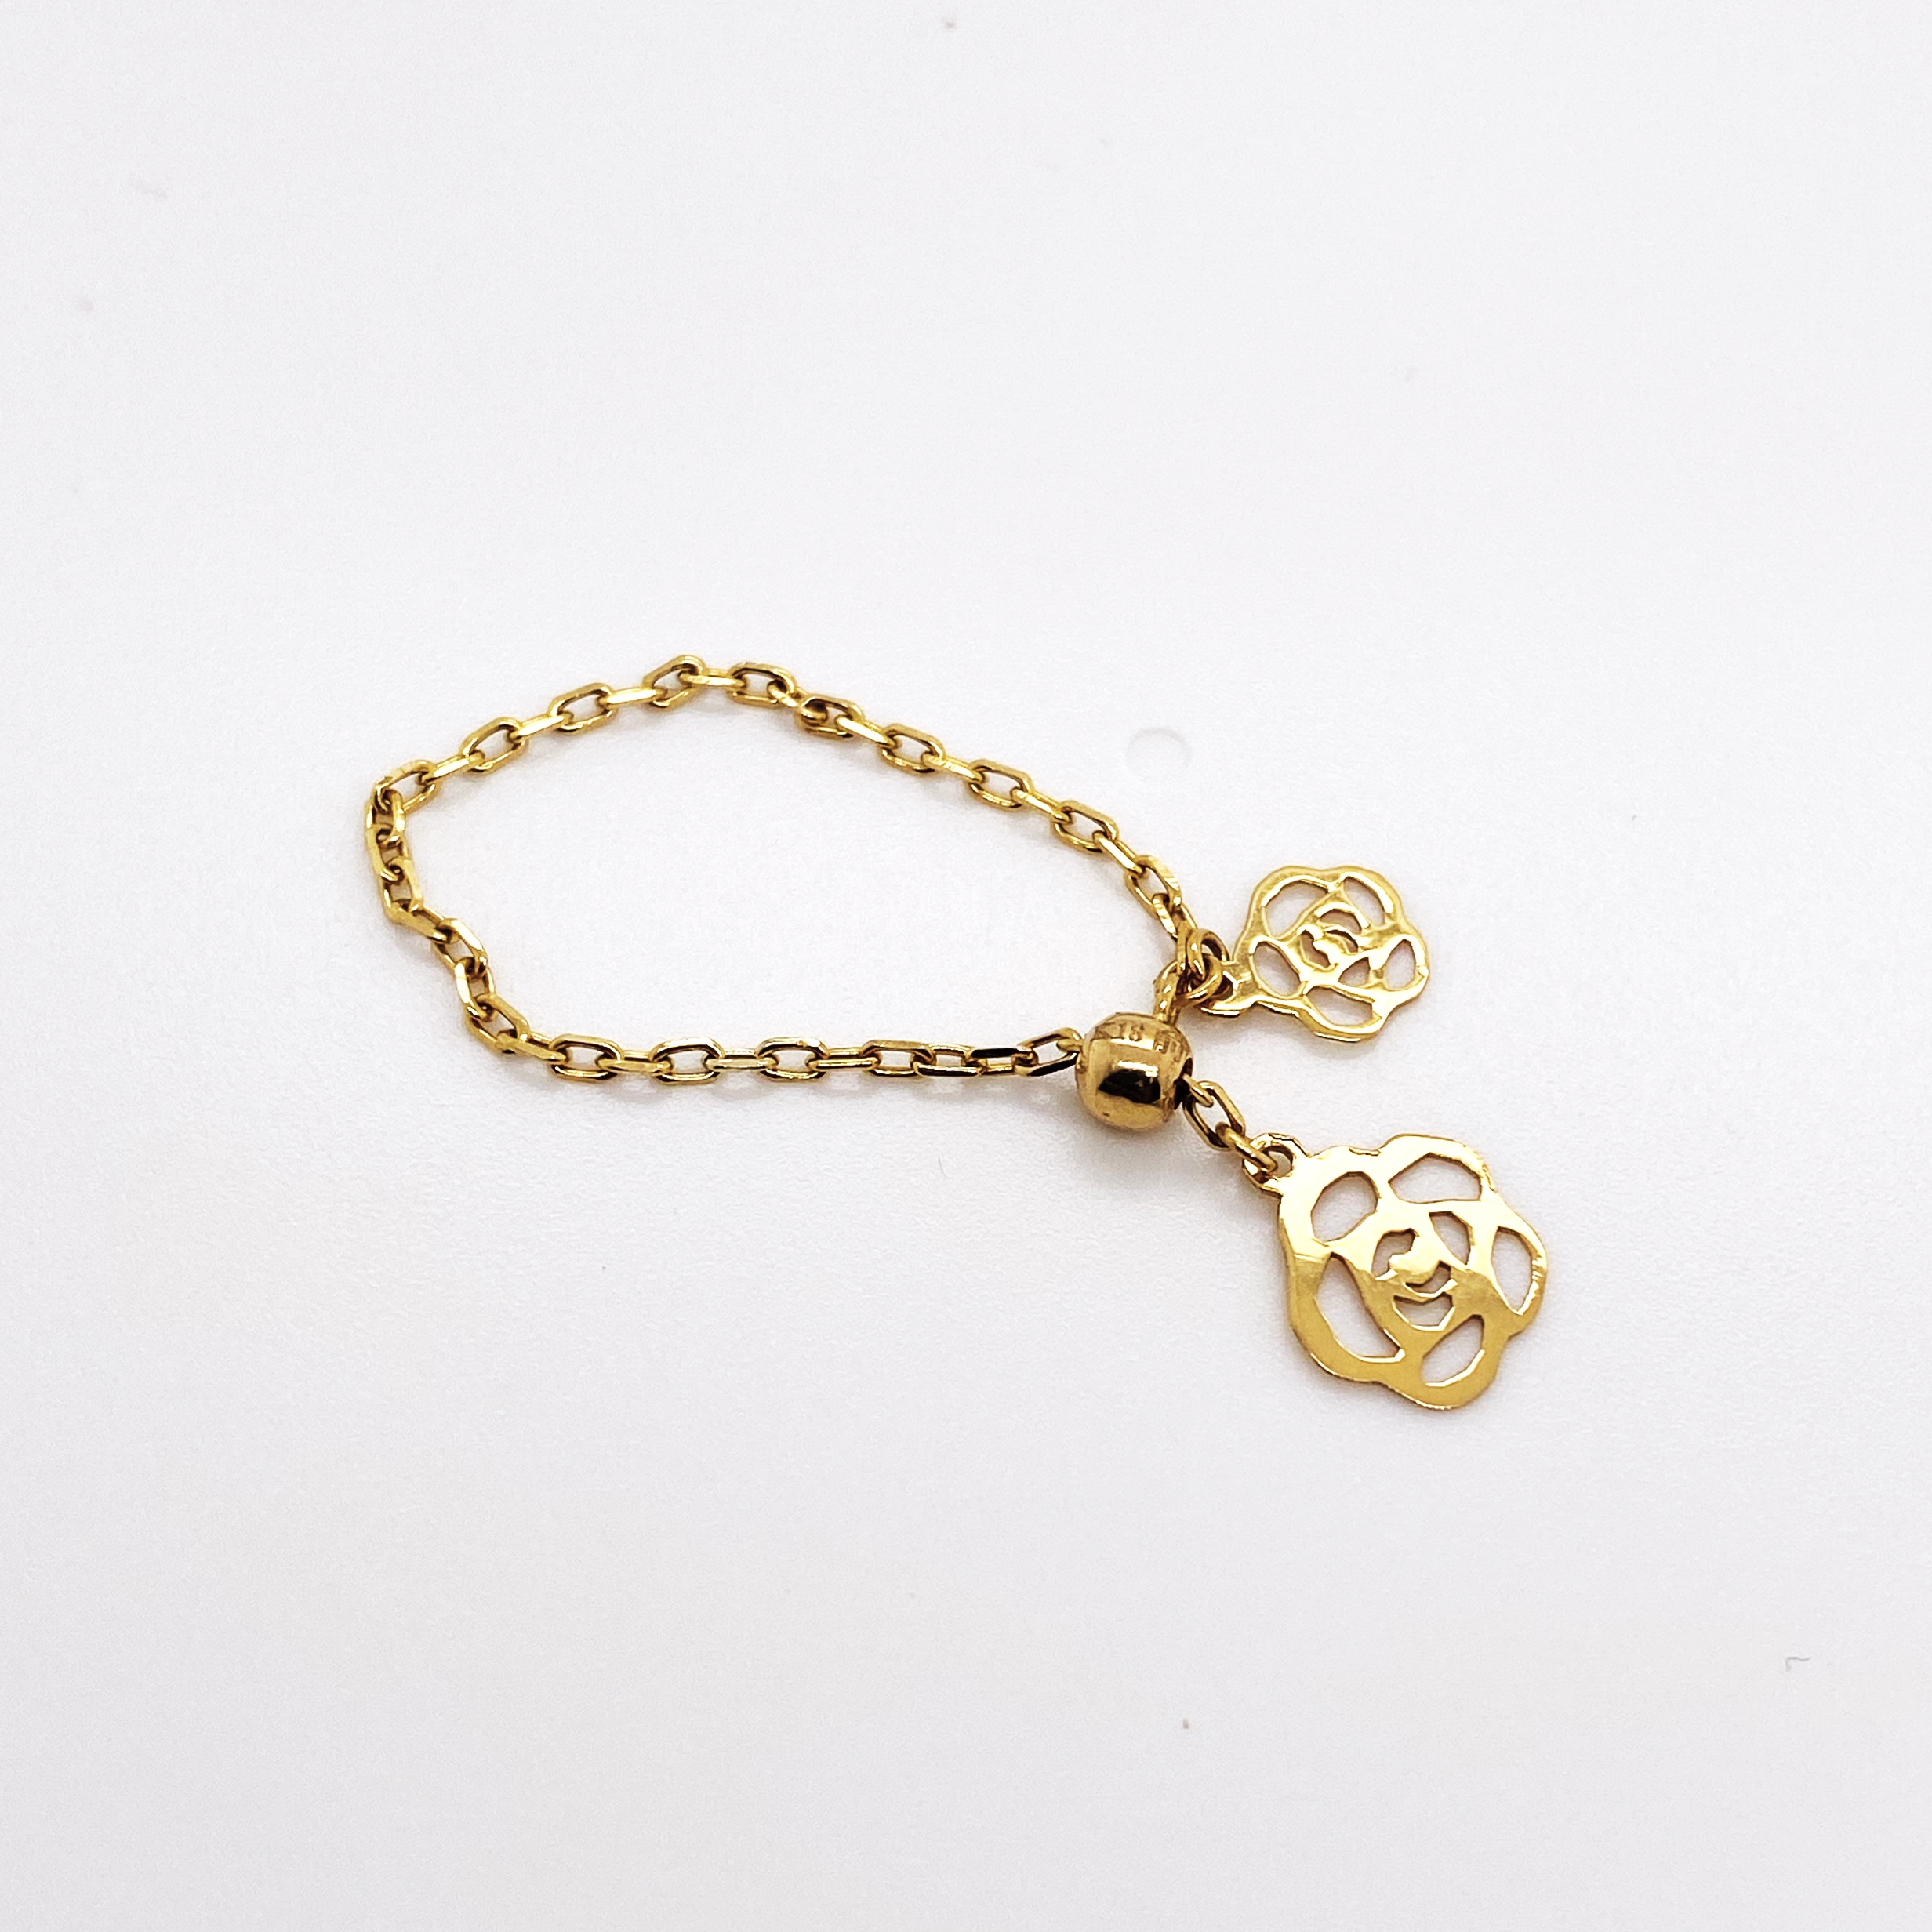 0.79 grams 18K SD Gold Adjustable ring with Heart